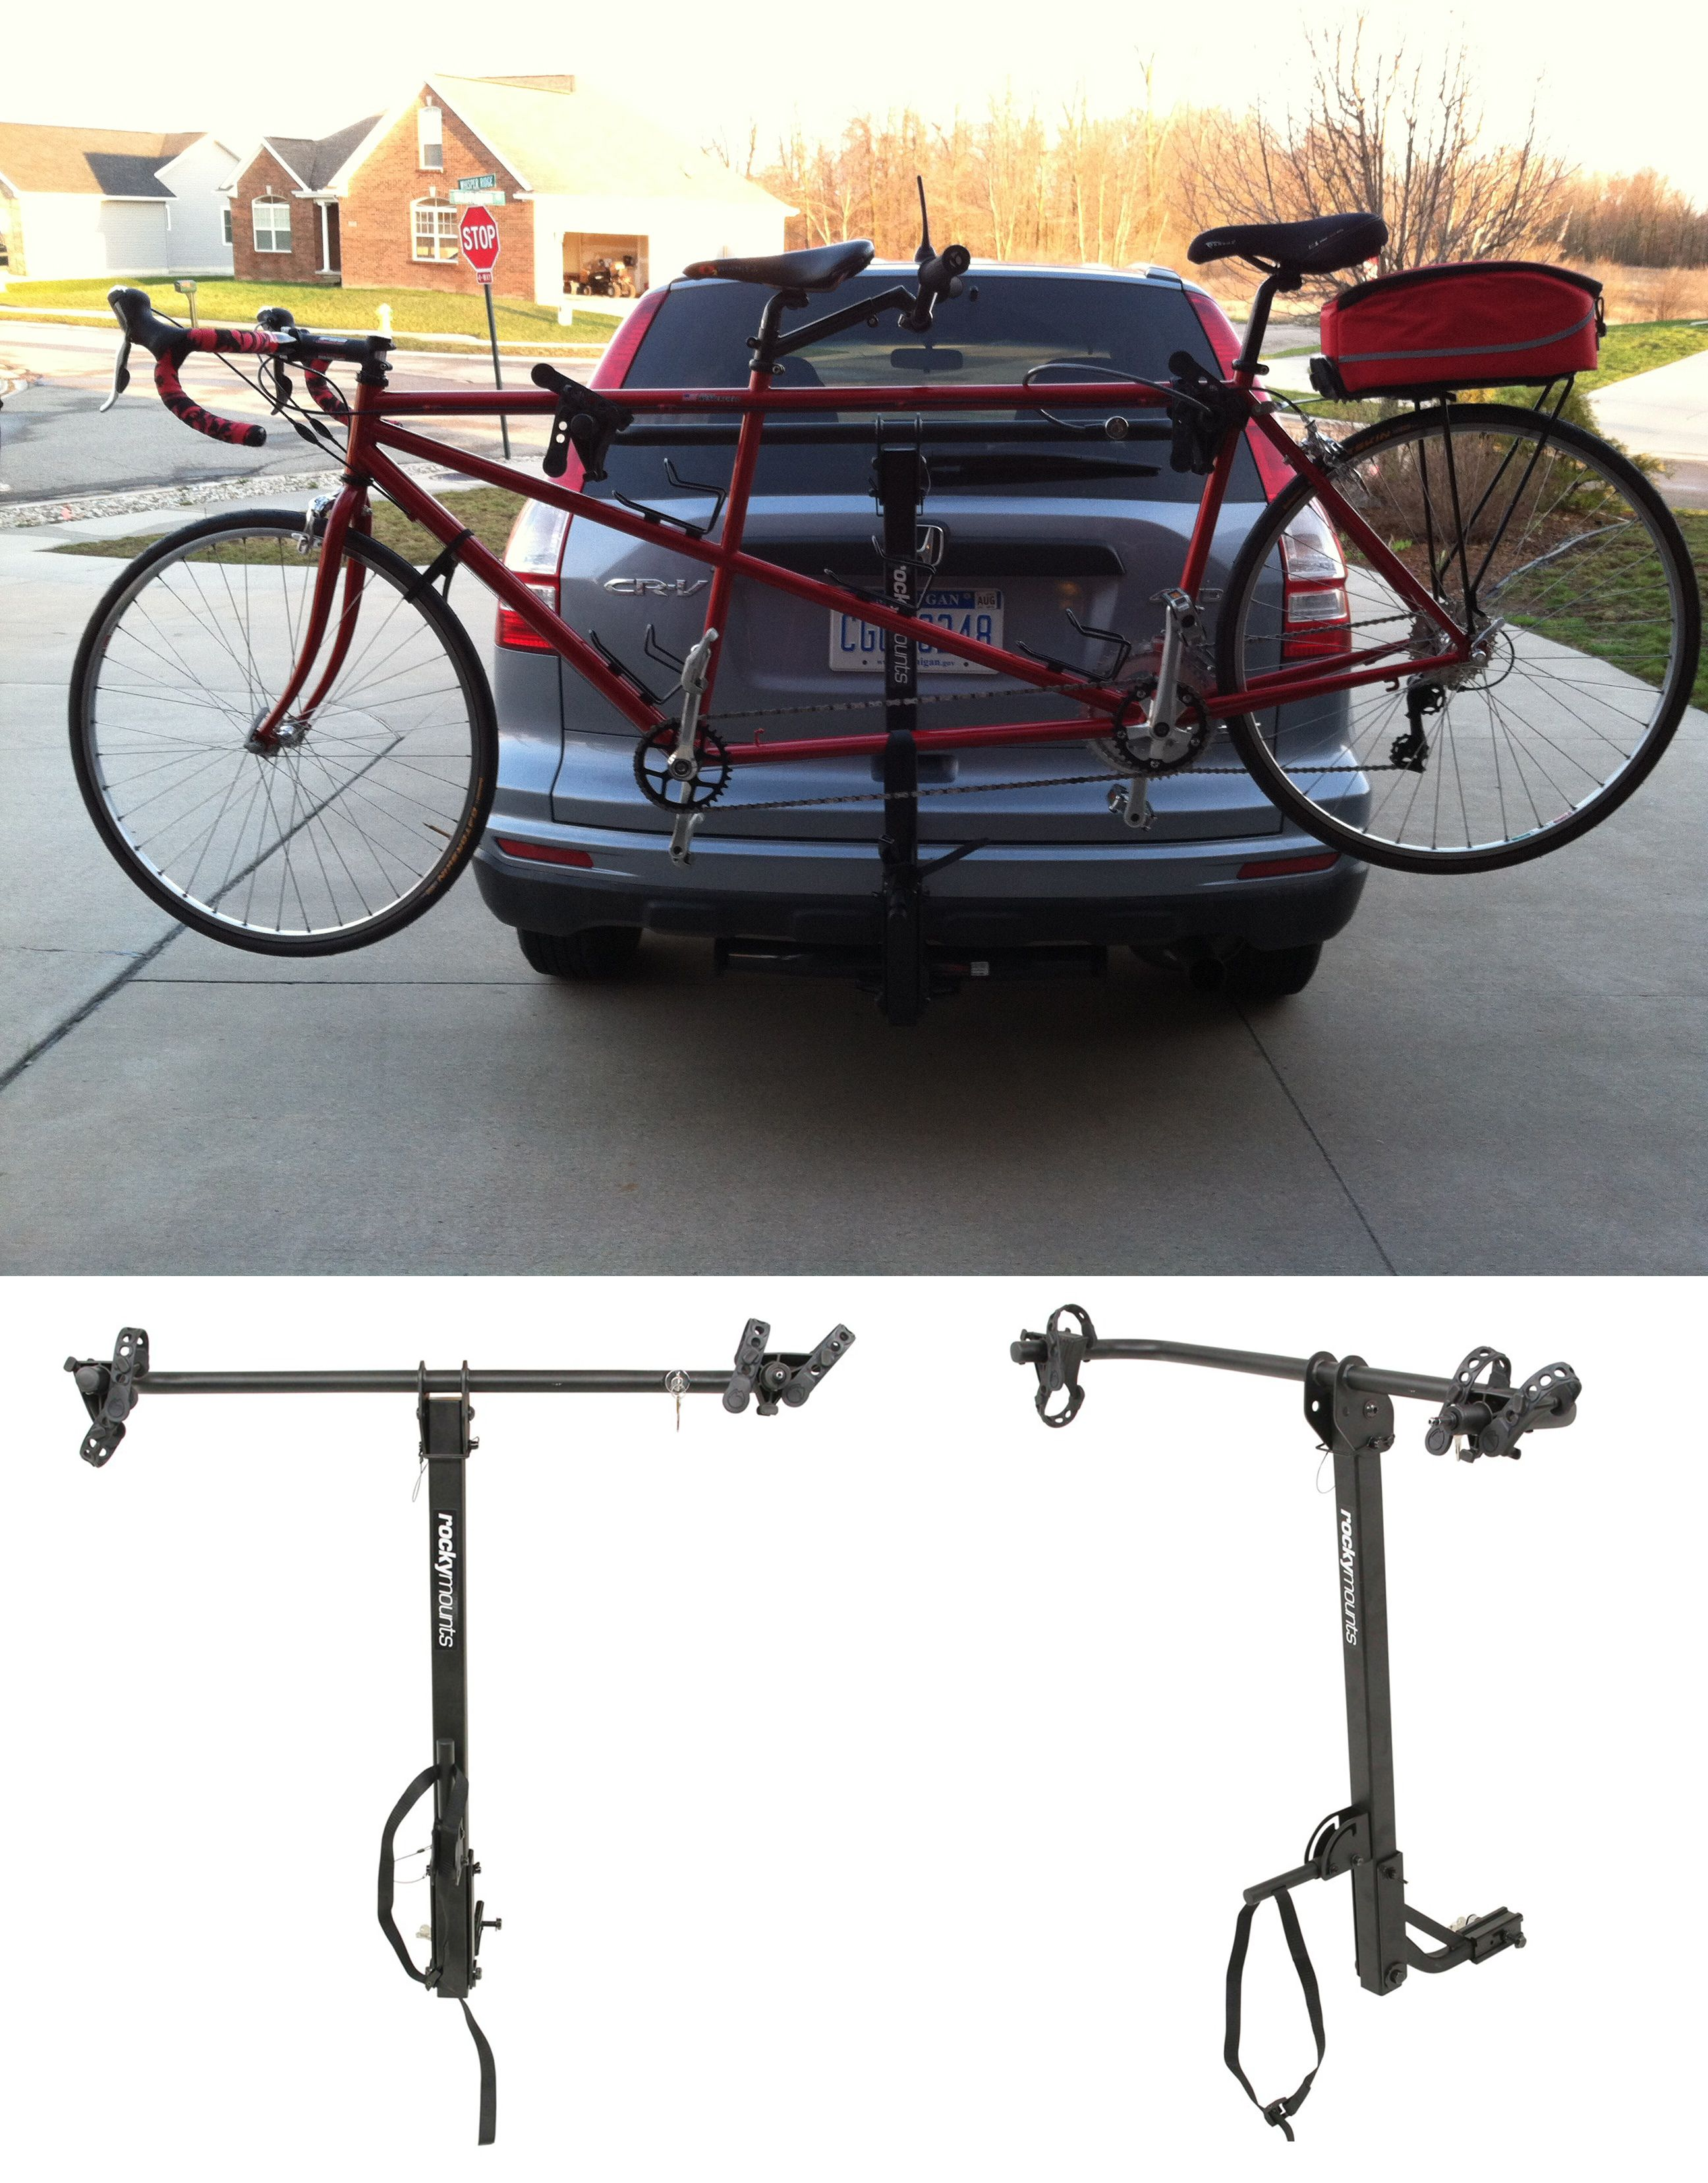 Gps Tracking Device For Cars >> A tandem bike needs a mode of transportation too! This ...